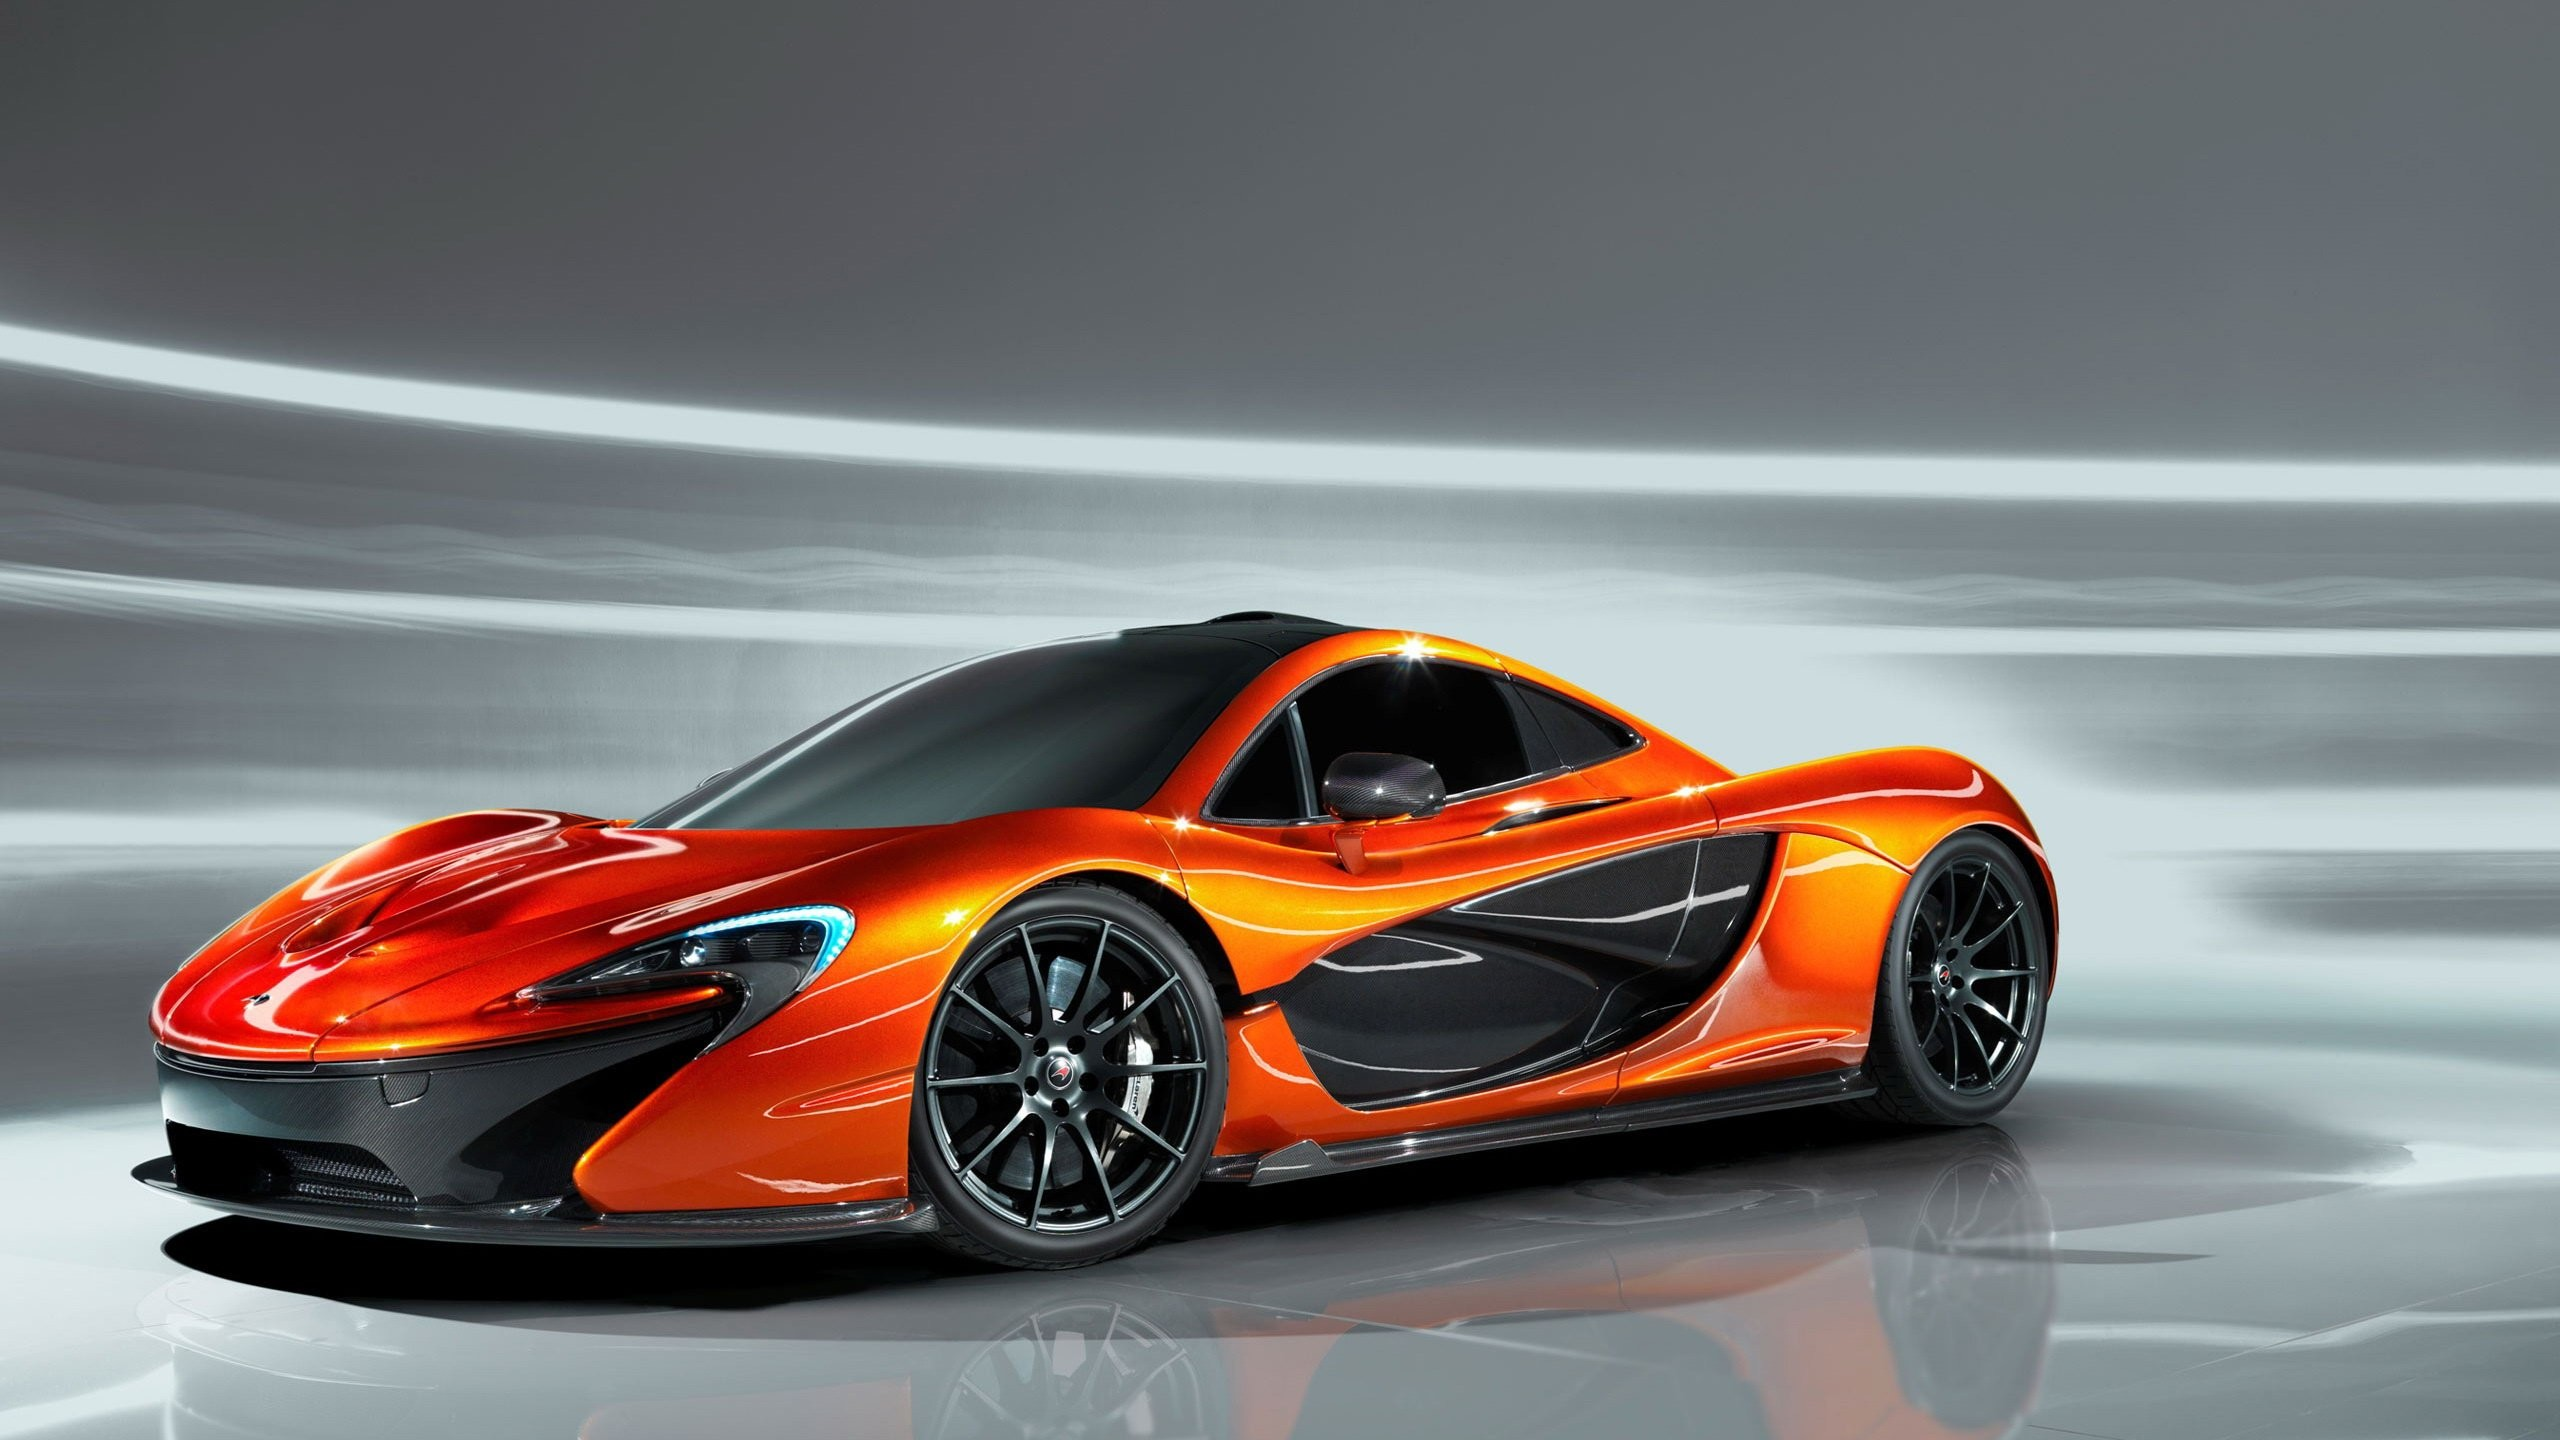 2014 Sports Cars Wallpaper Cool Wallpaper Background